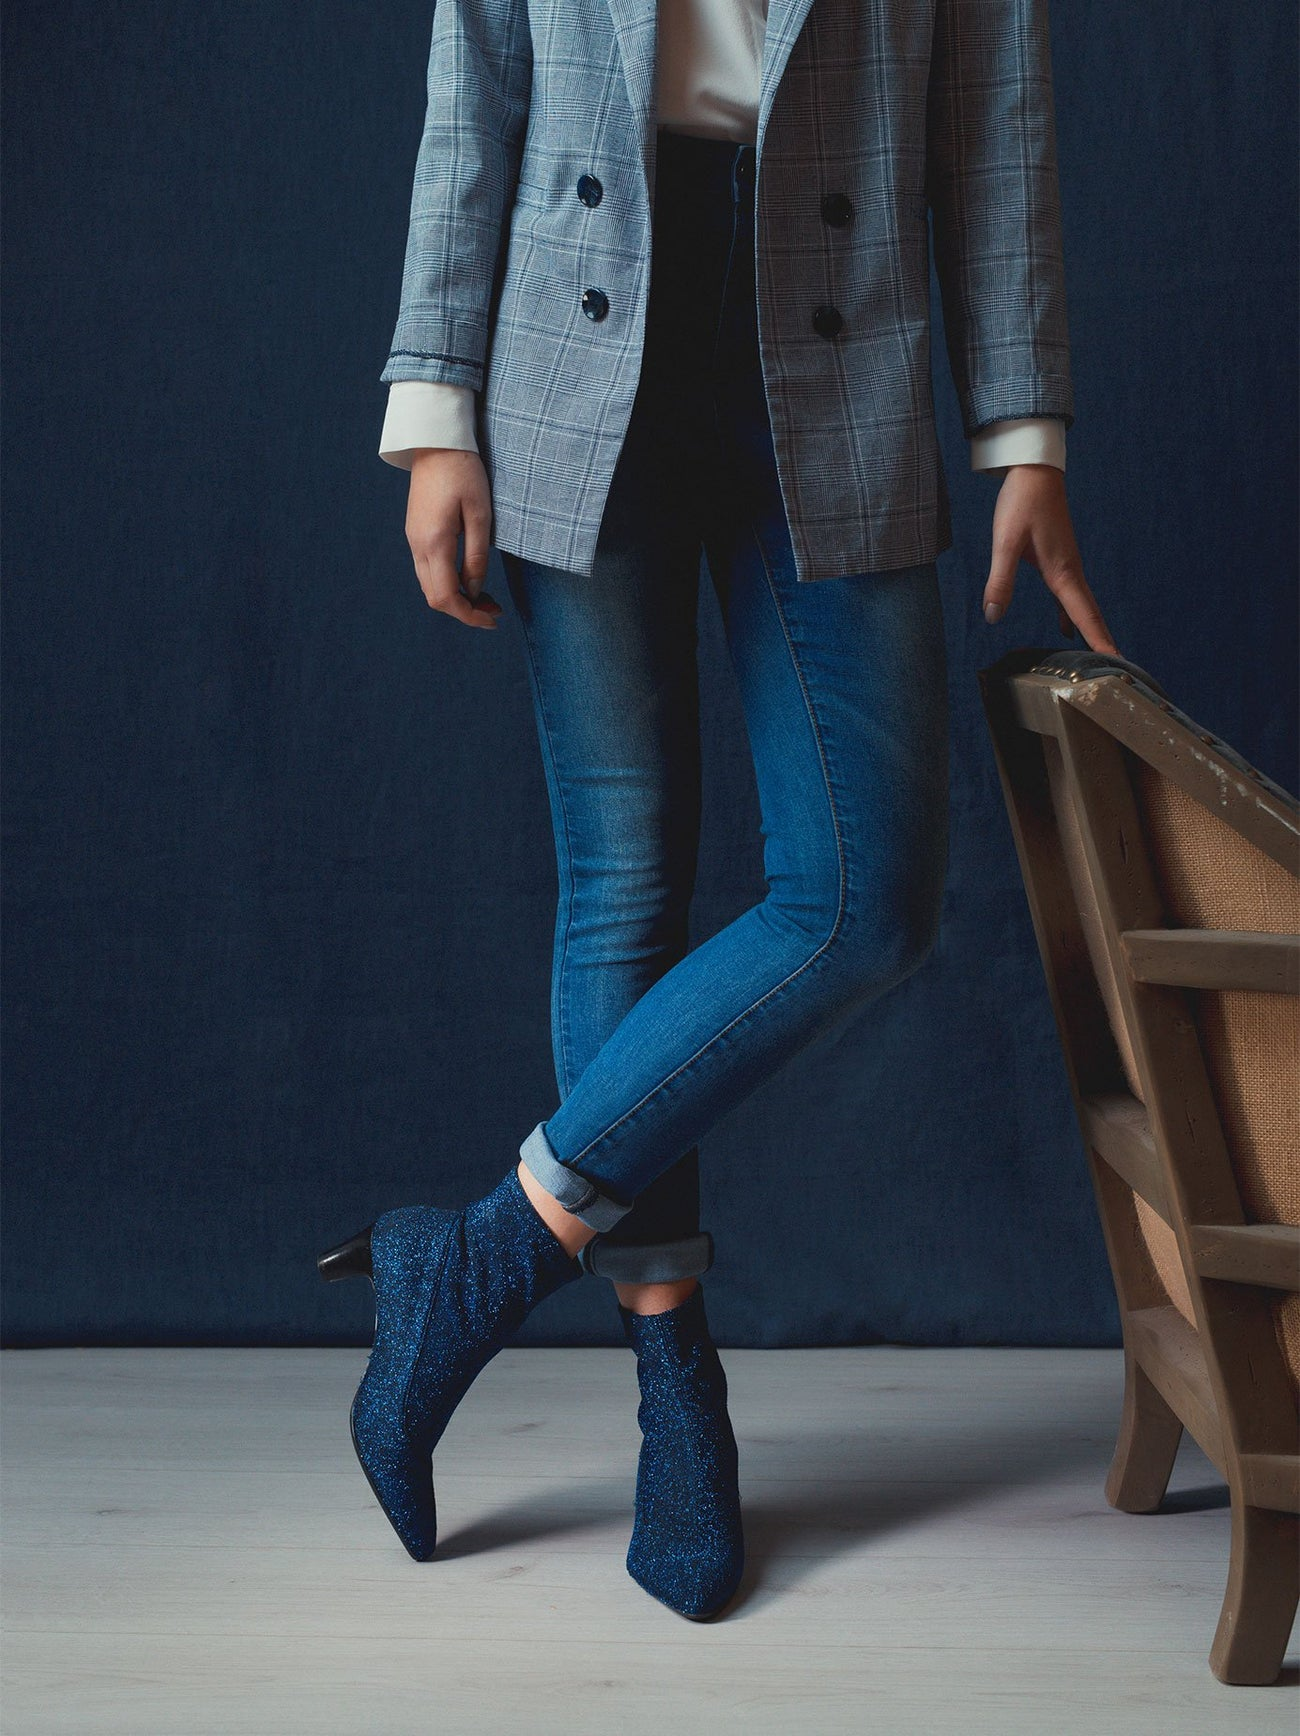 The blue sparkly boot has a fashionable sleek statement  silhouette.